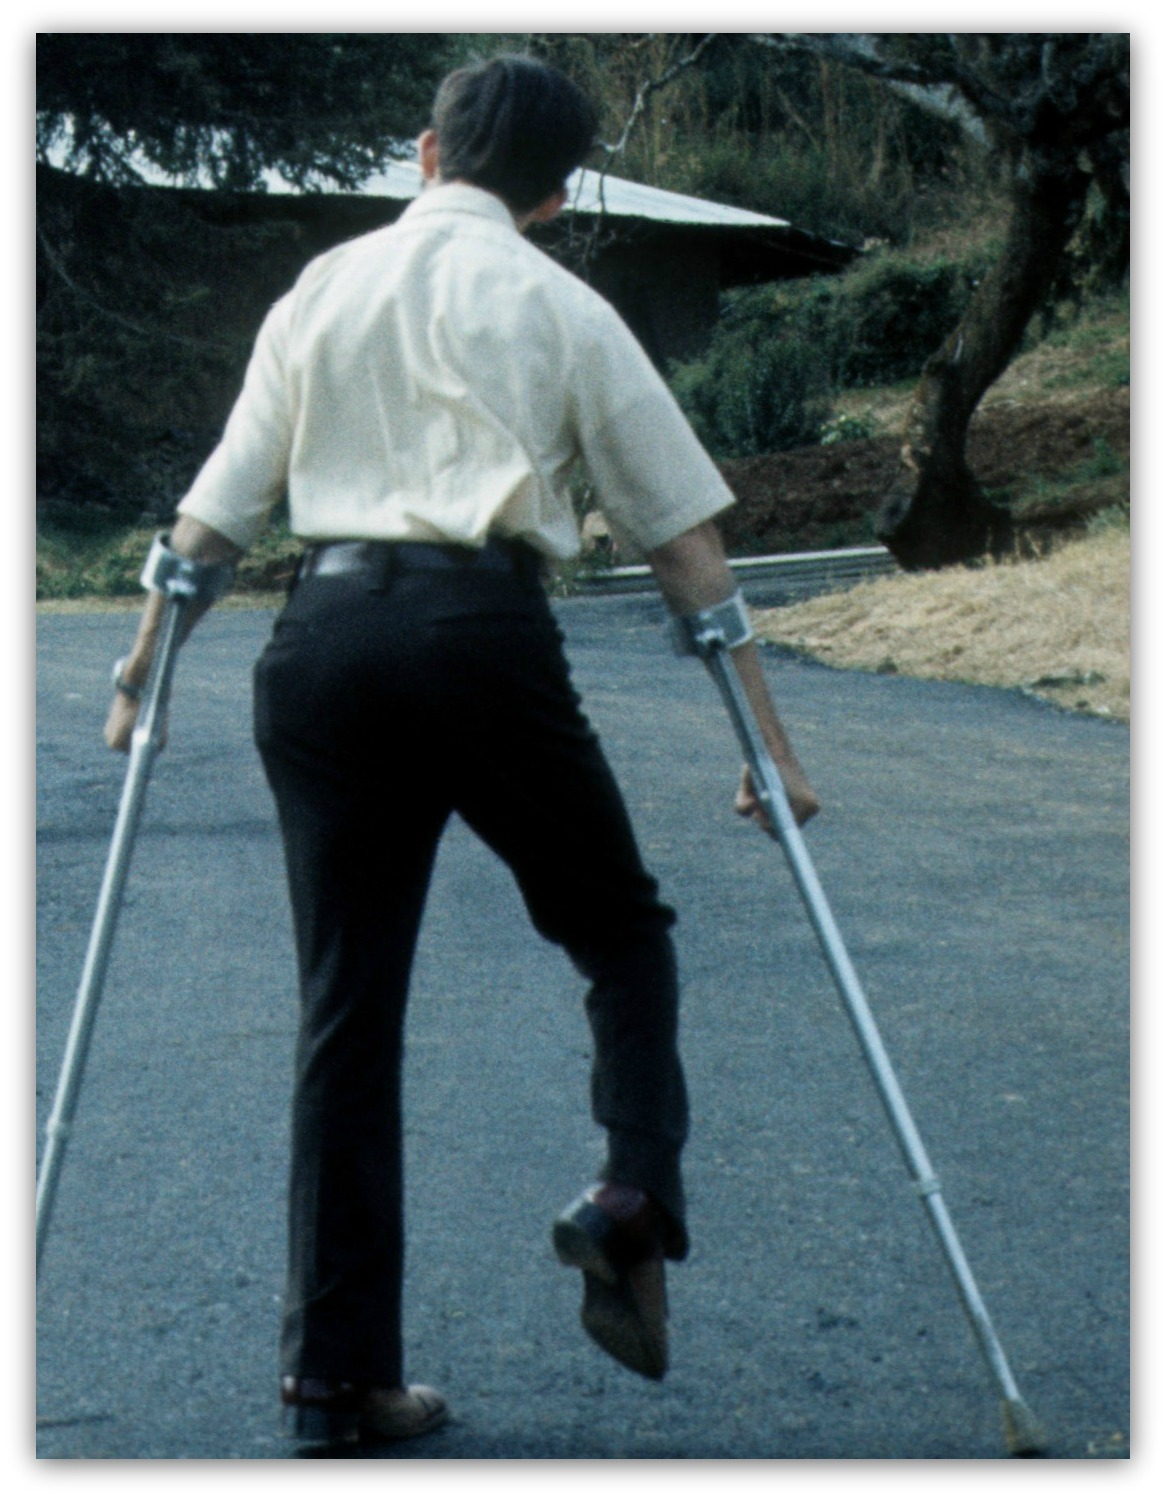 Jim Hasse (from backside) walking up hill with Canadian crutches.